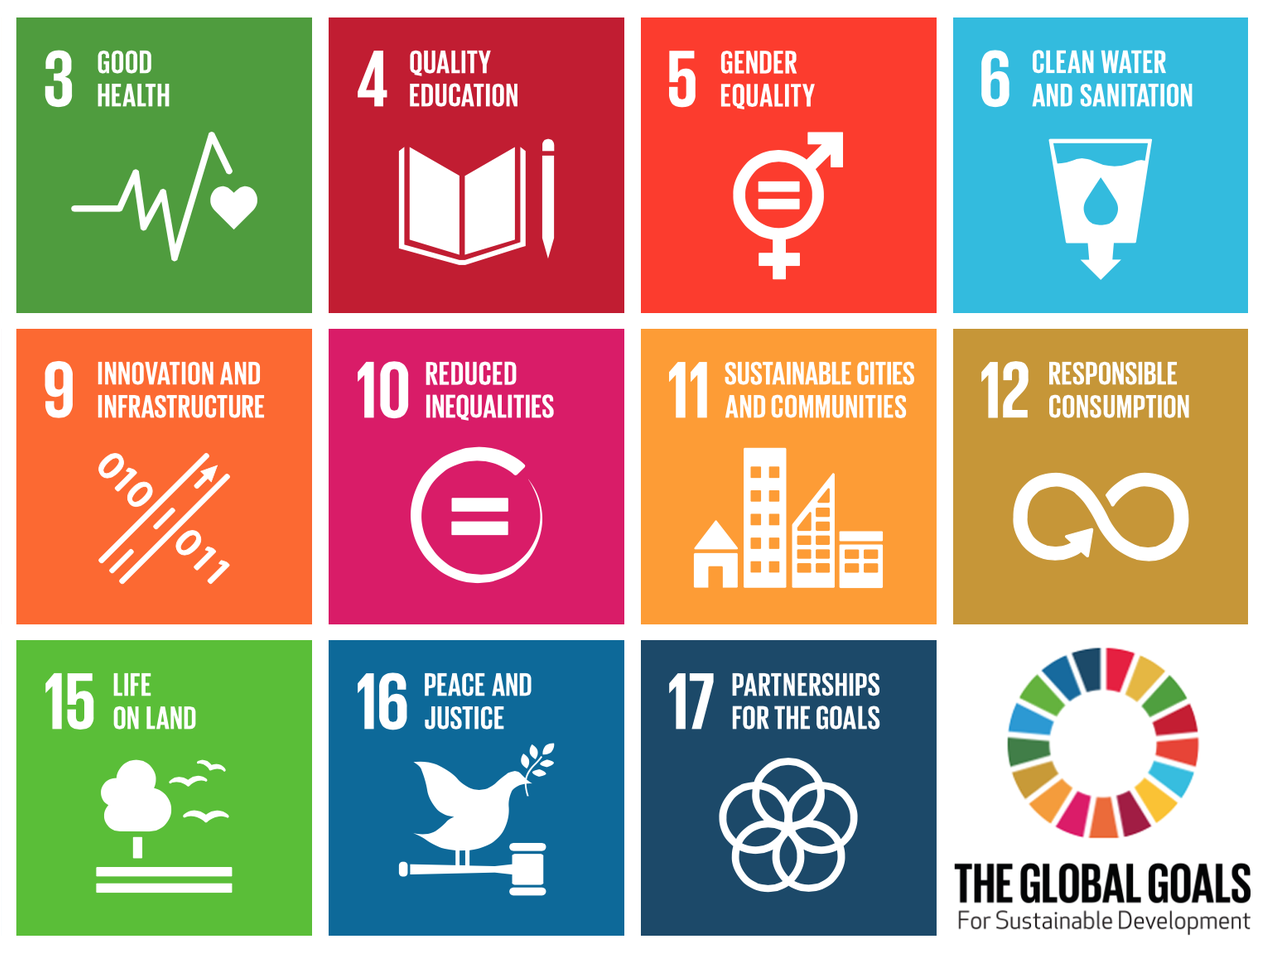 Source: http://www.globalgoals.org/